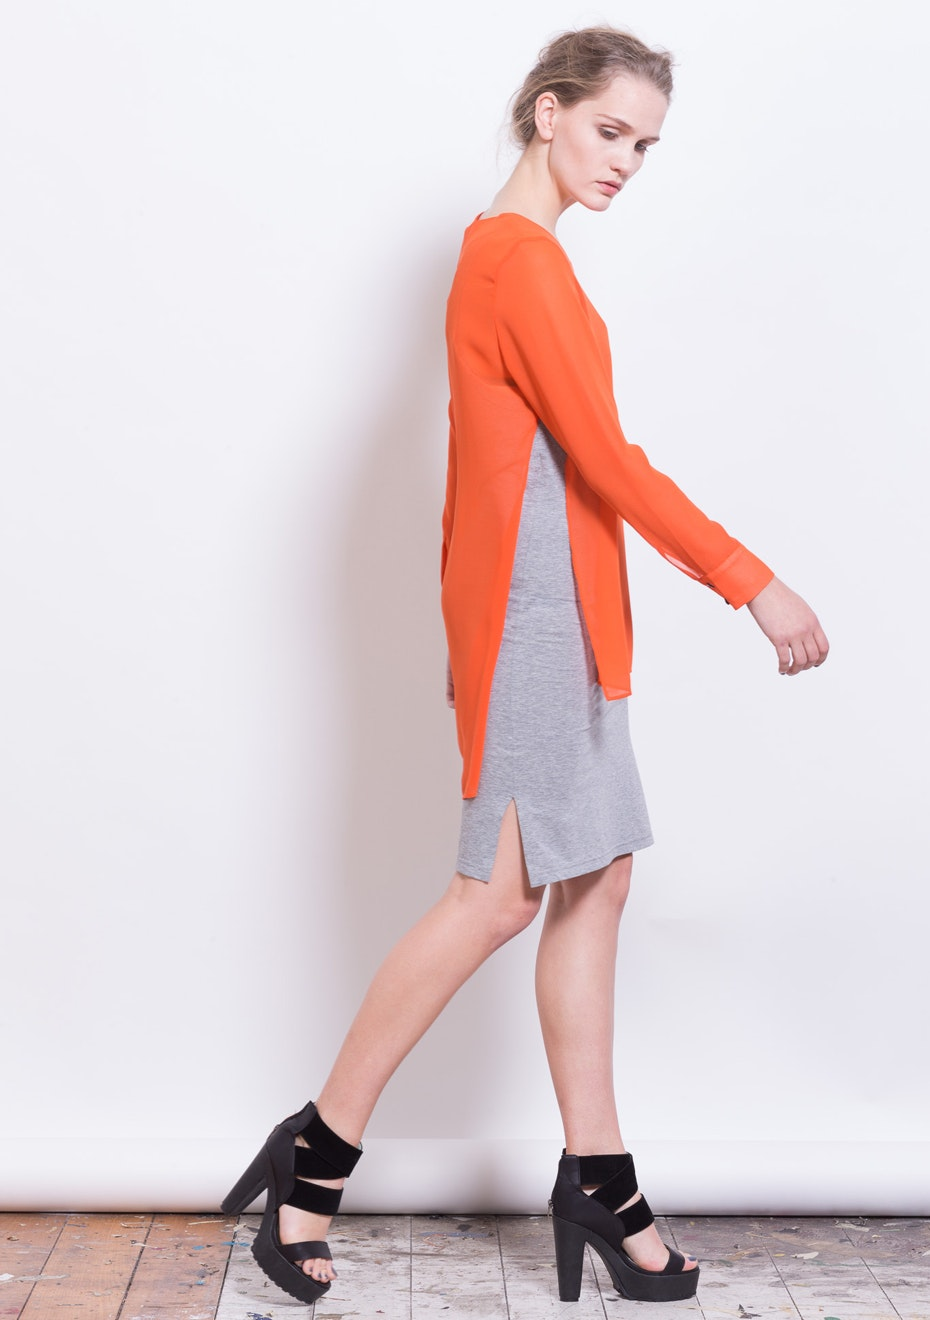 X-Plain - Sensibility Top - Persimmon